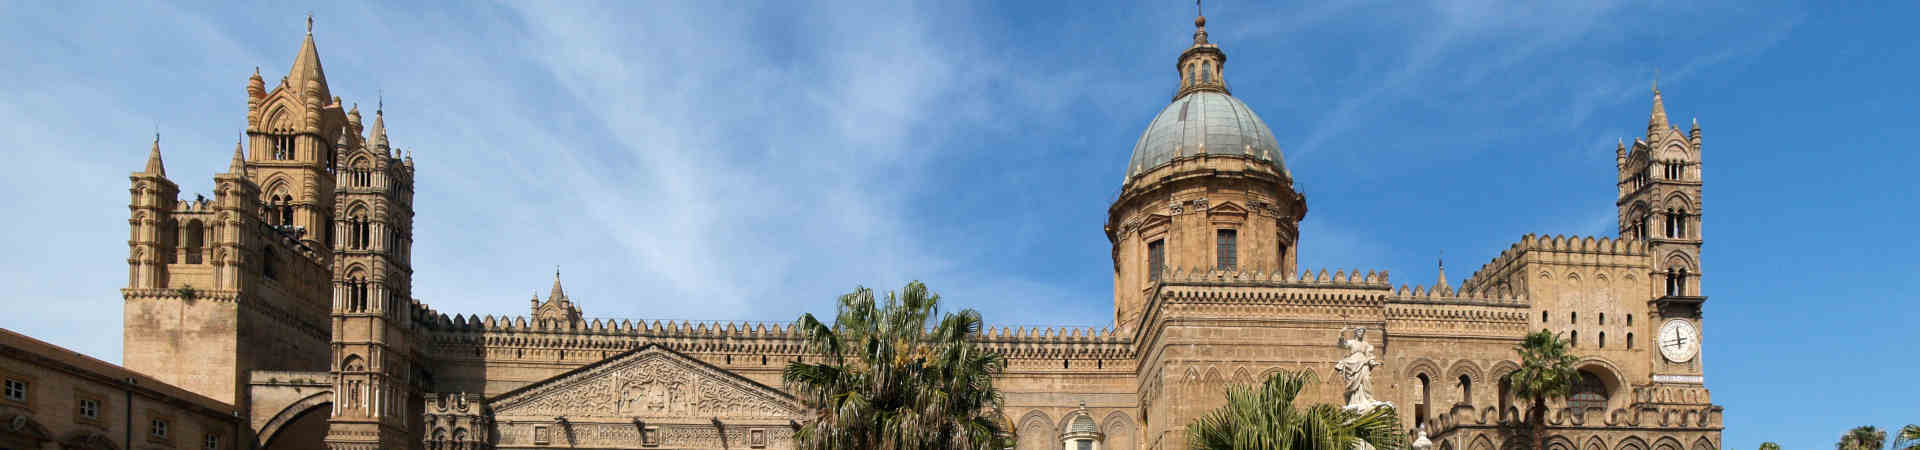 Resource image of the destination port Palermo for the ferry route Tunis - Palermo